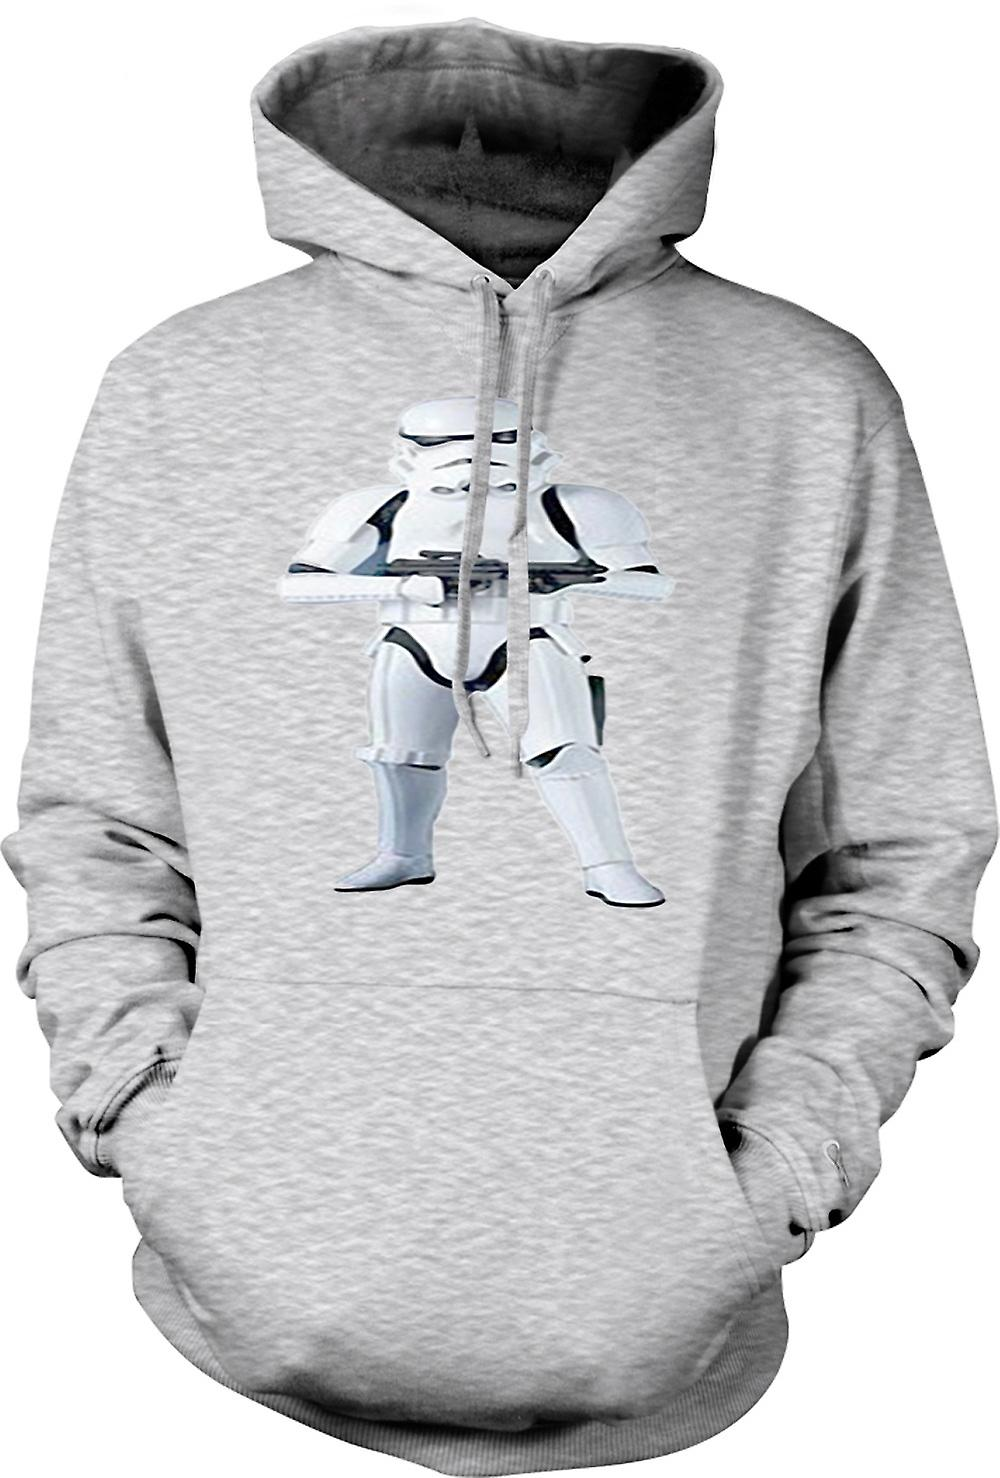 Mens Hoodie - Star Wars - Storm Trooper - Vidéo